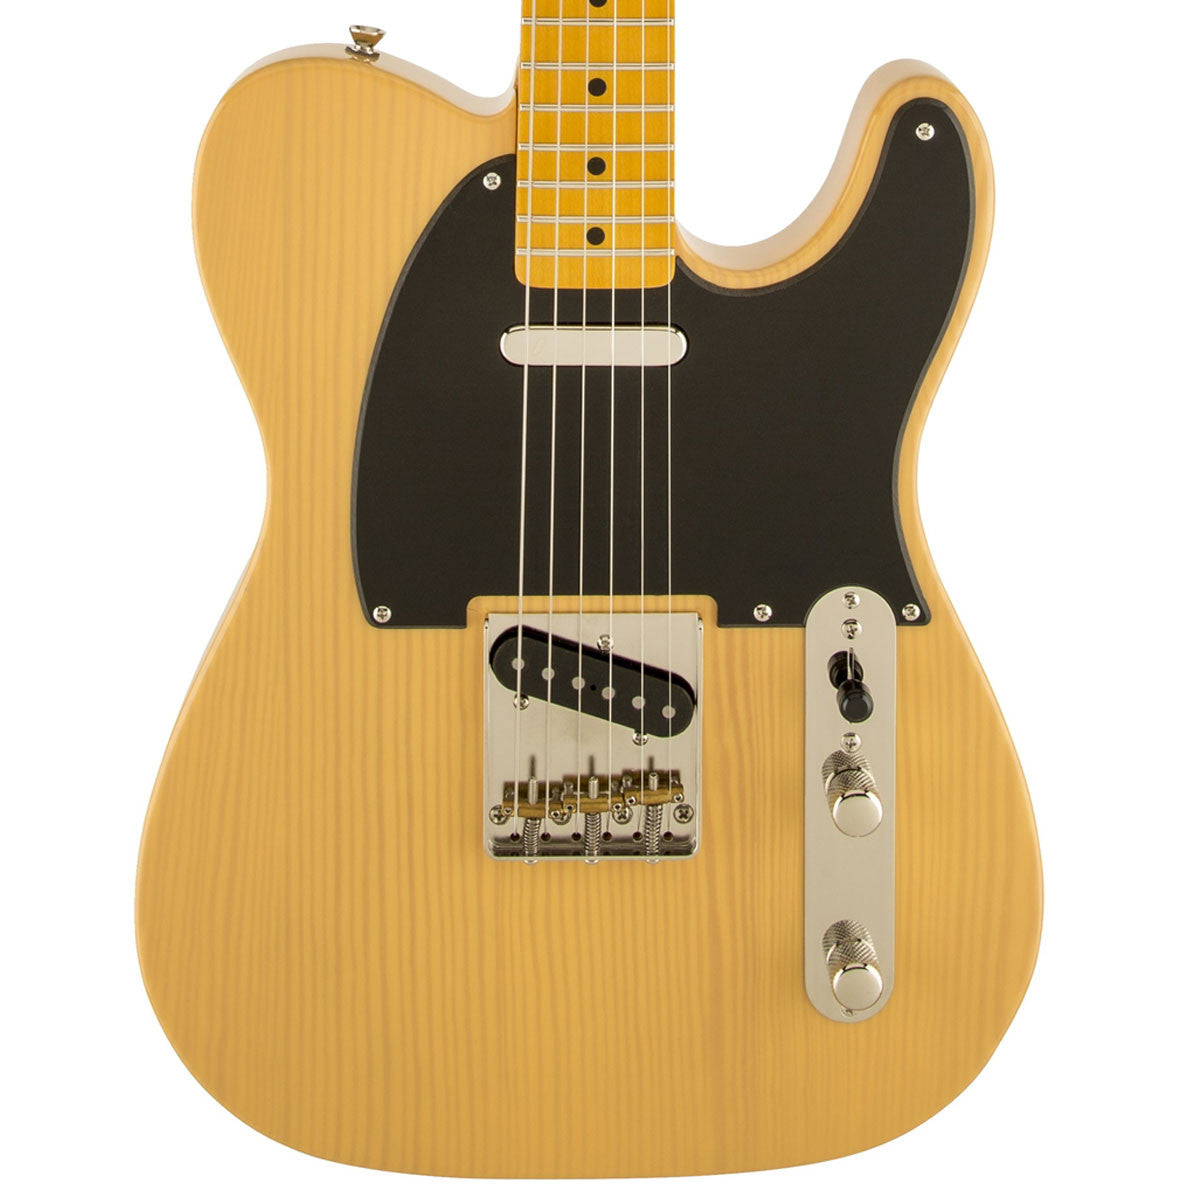 Squier Classic Vibe '50s Telecaster - Maple - Butterscotch Blonde - Vintage Guitar Boutique - 1